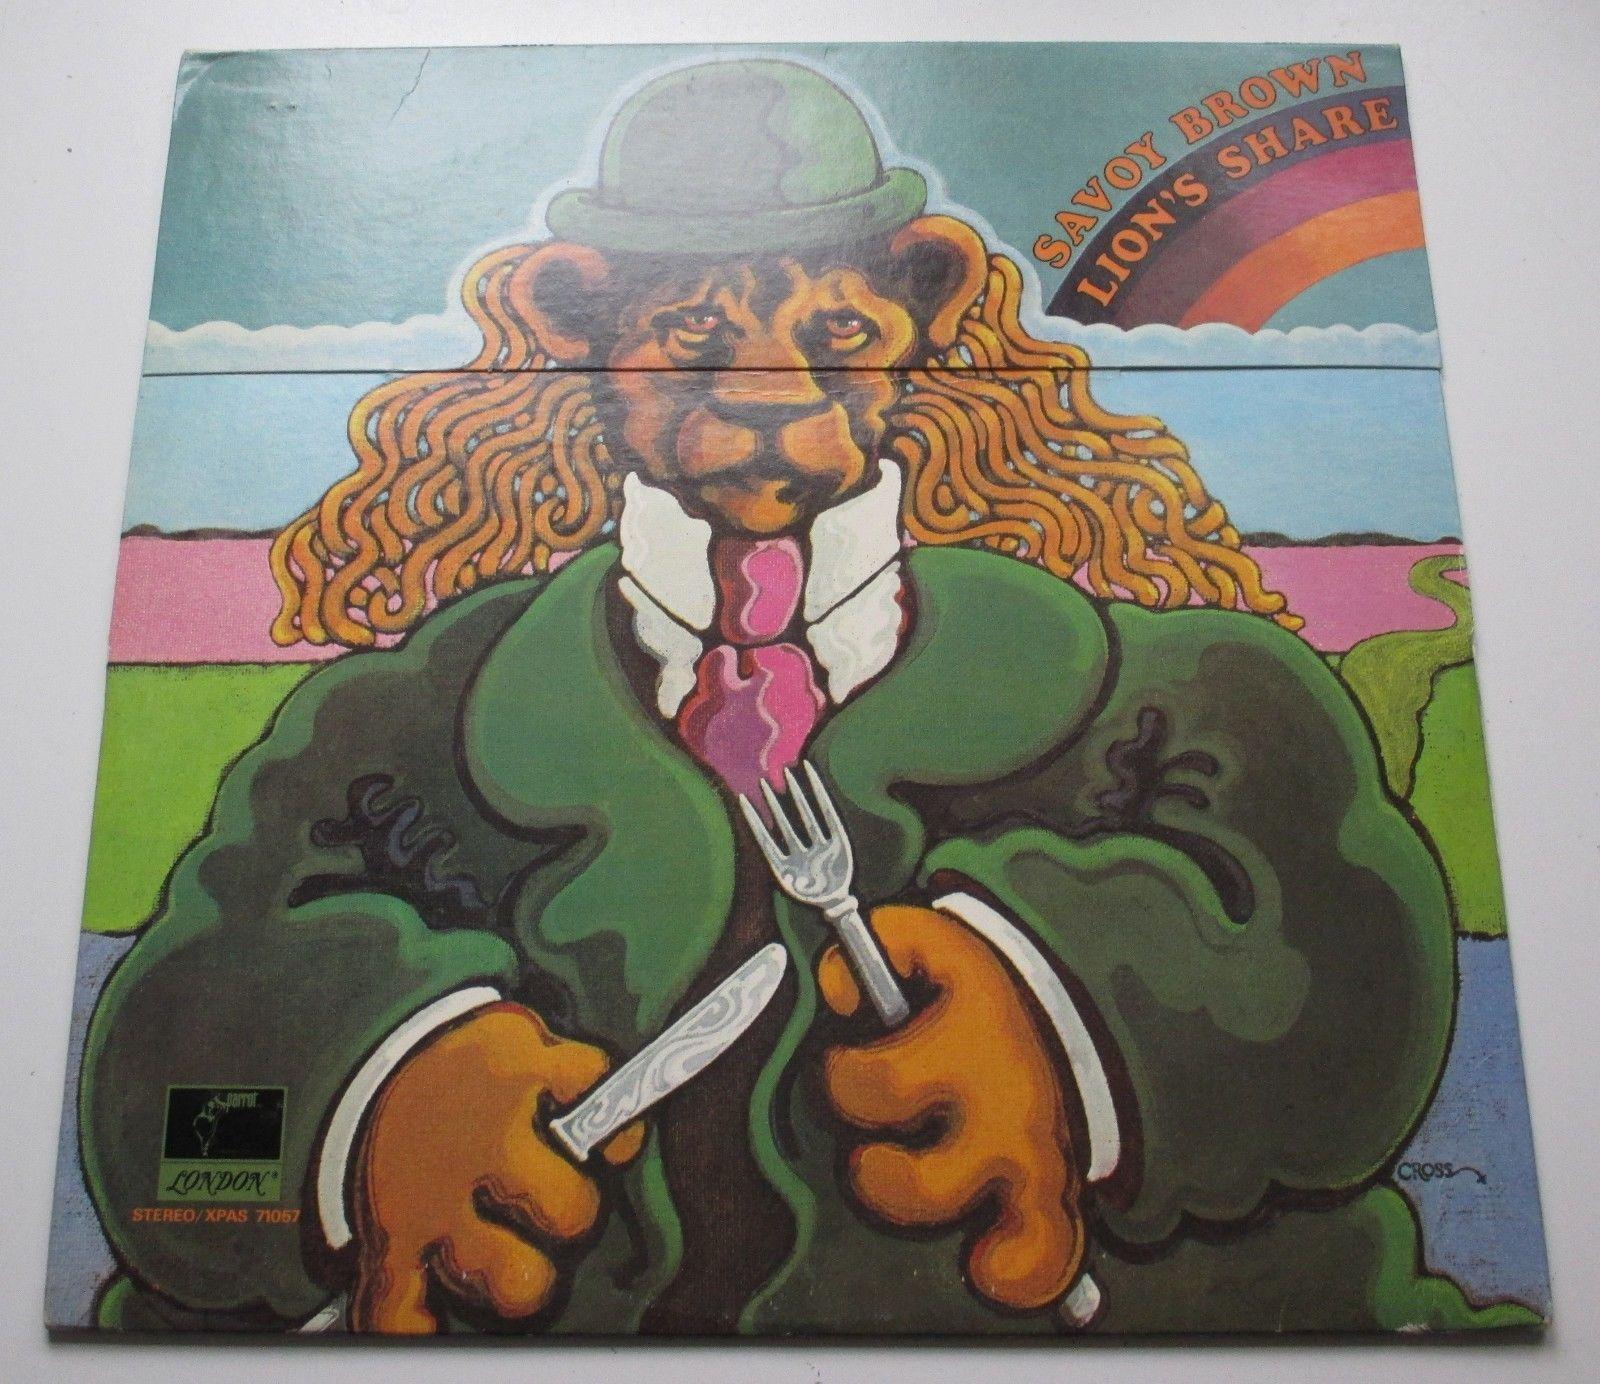 SAVOY BROWN 'LION'S SHARE' ORIG W/ FLIP TOP COVER UNDAMAGED '73 MINT